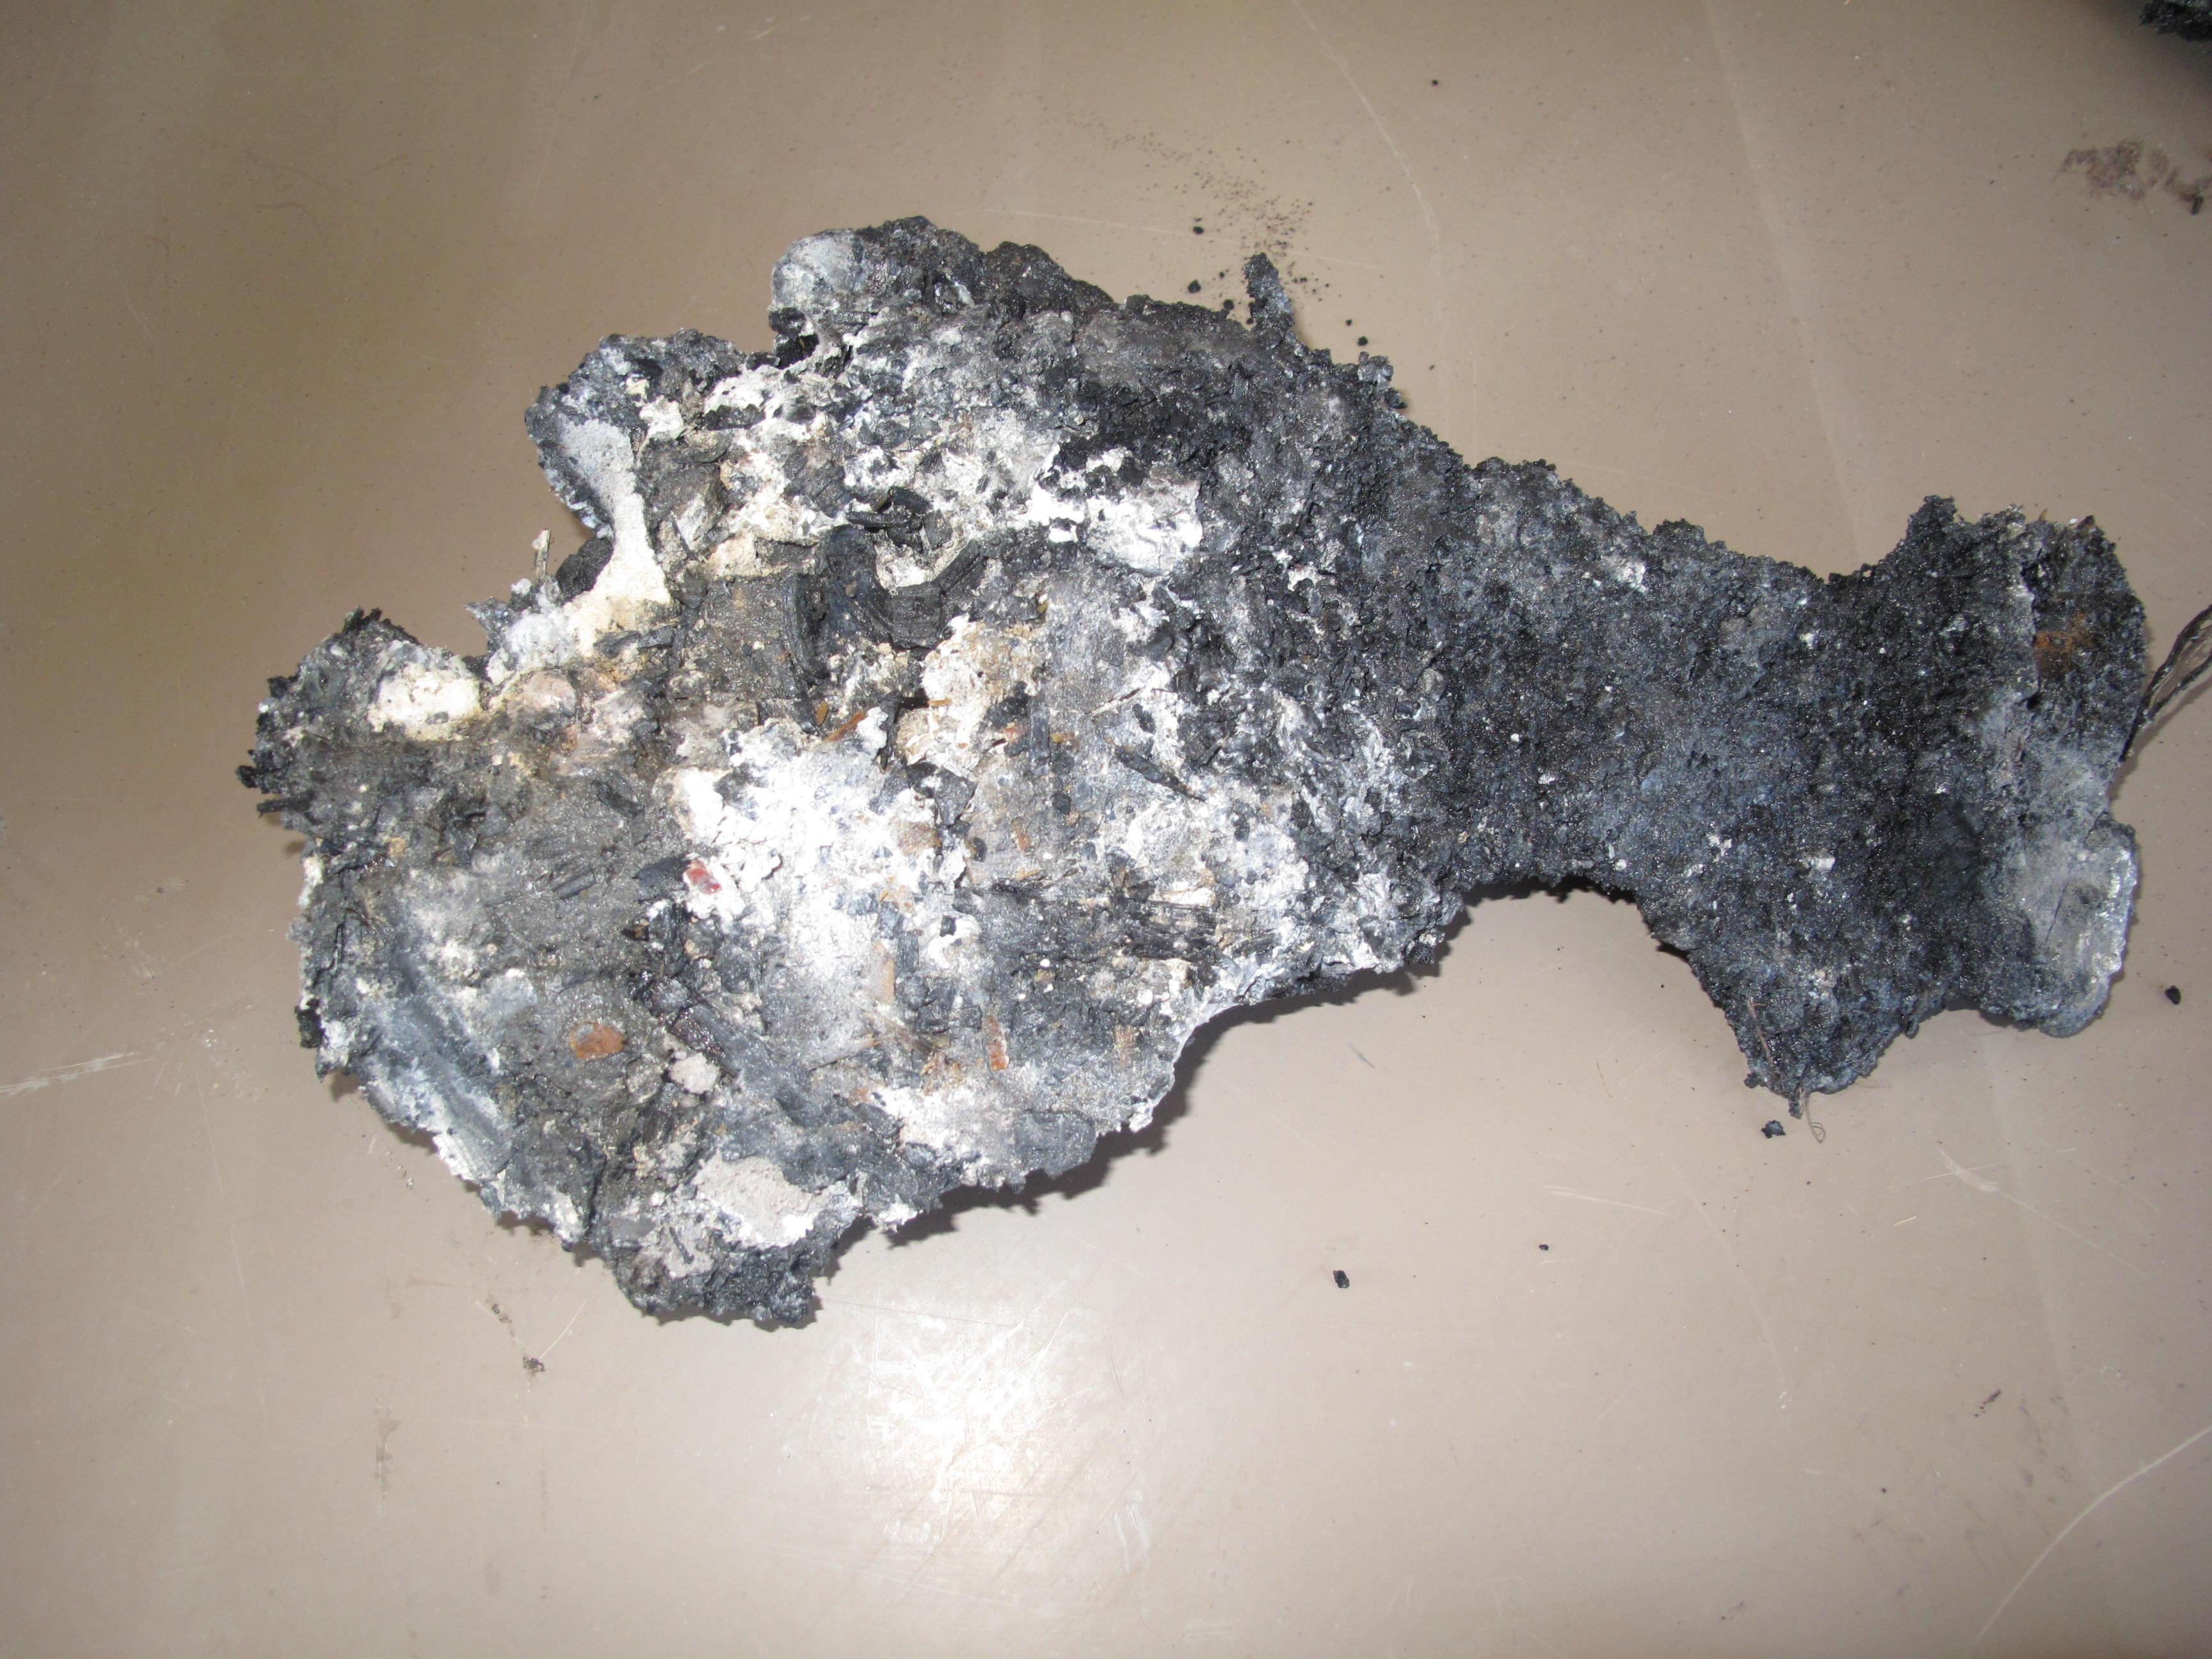 Hoverboard fire destroys million dollar home (Nashville FD)